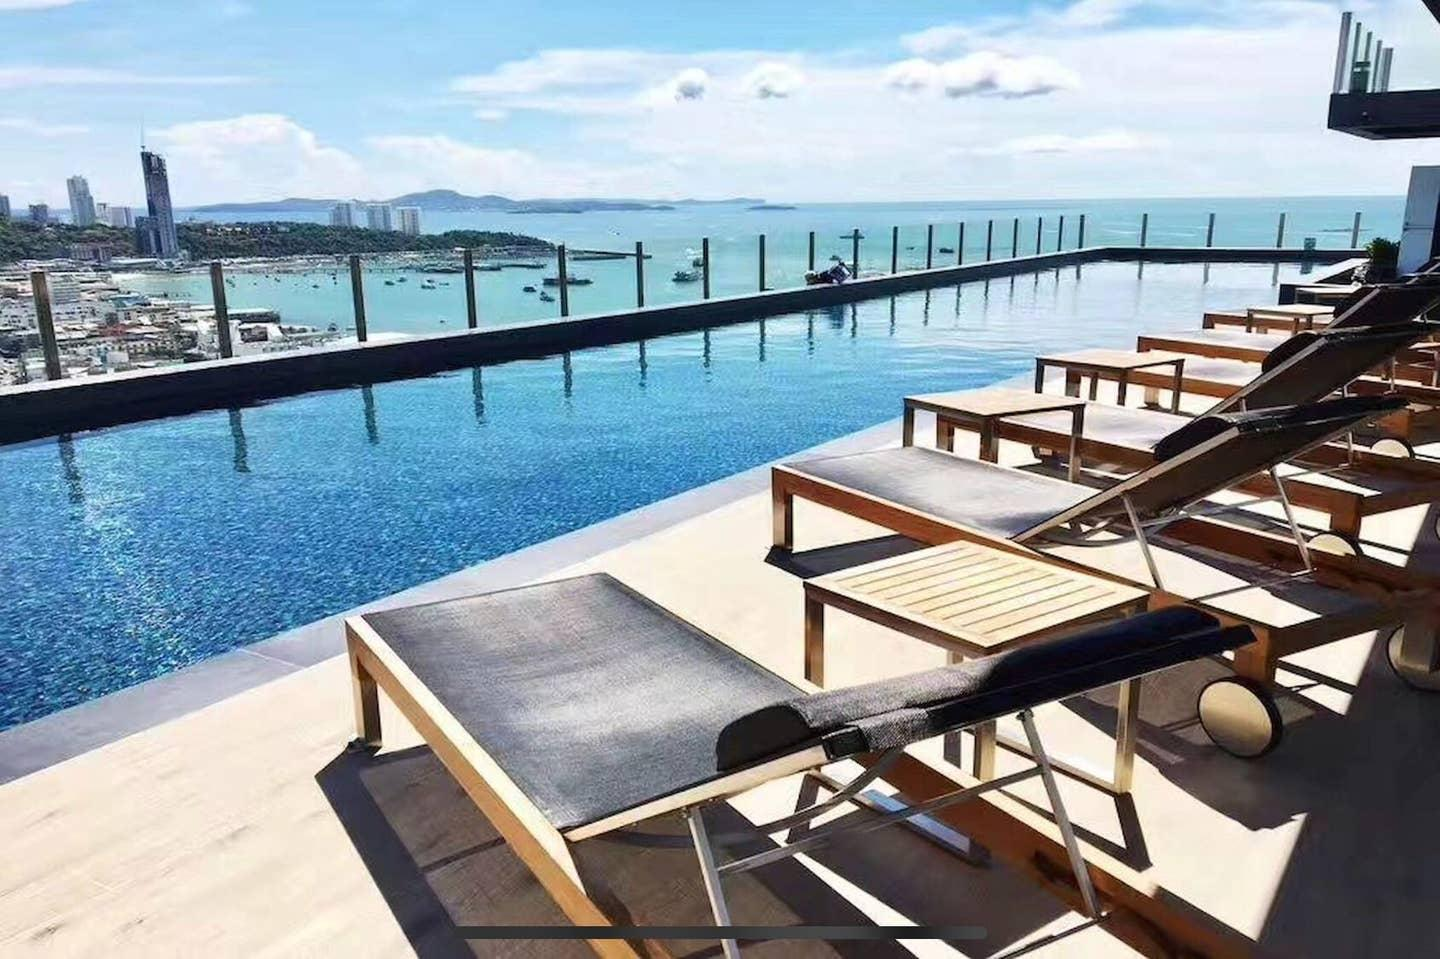 The Base Roof Infinity Pool